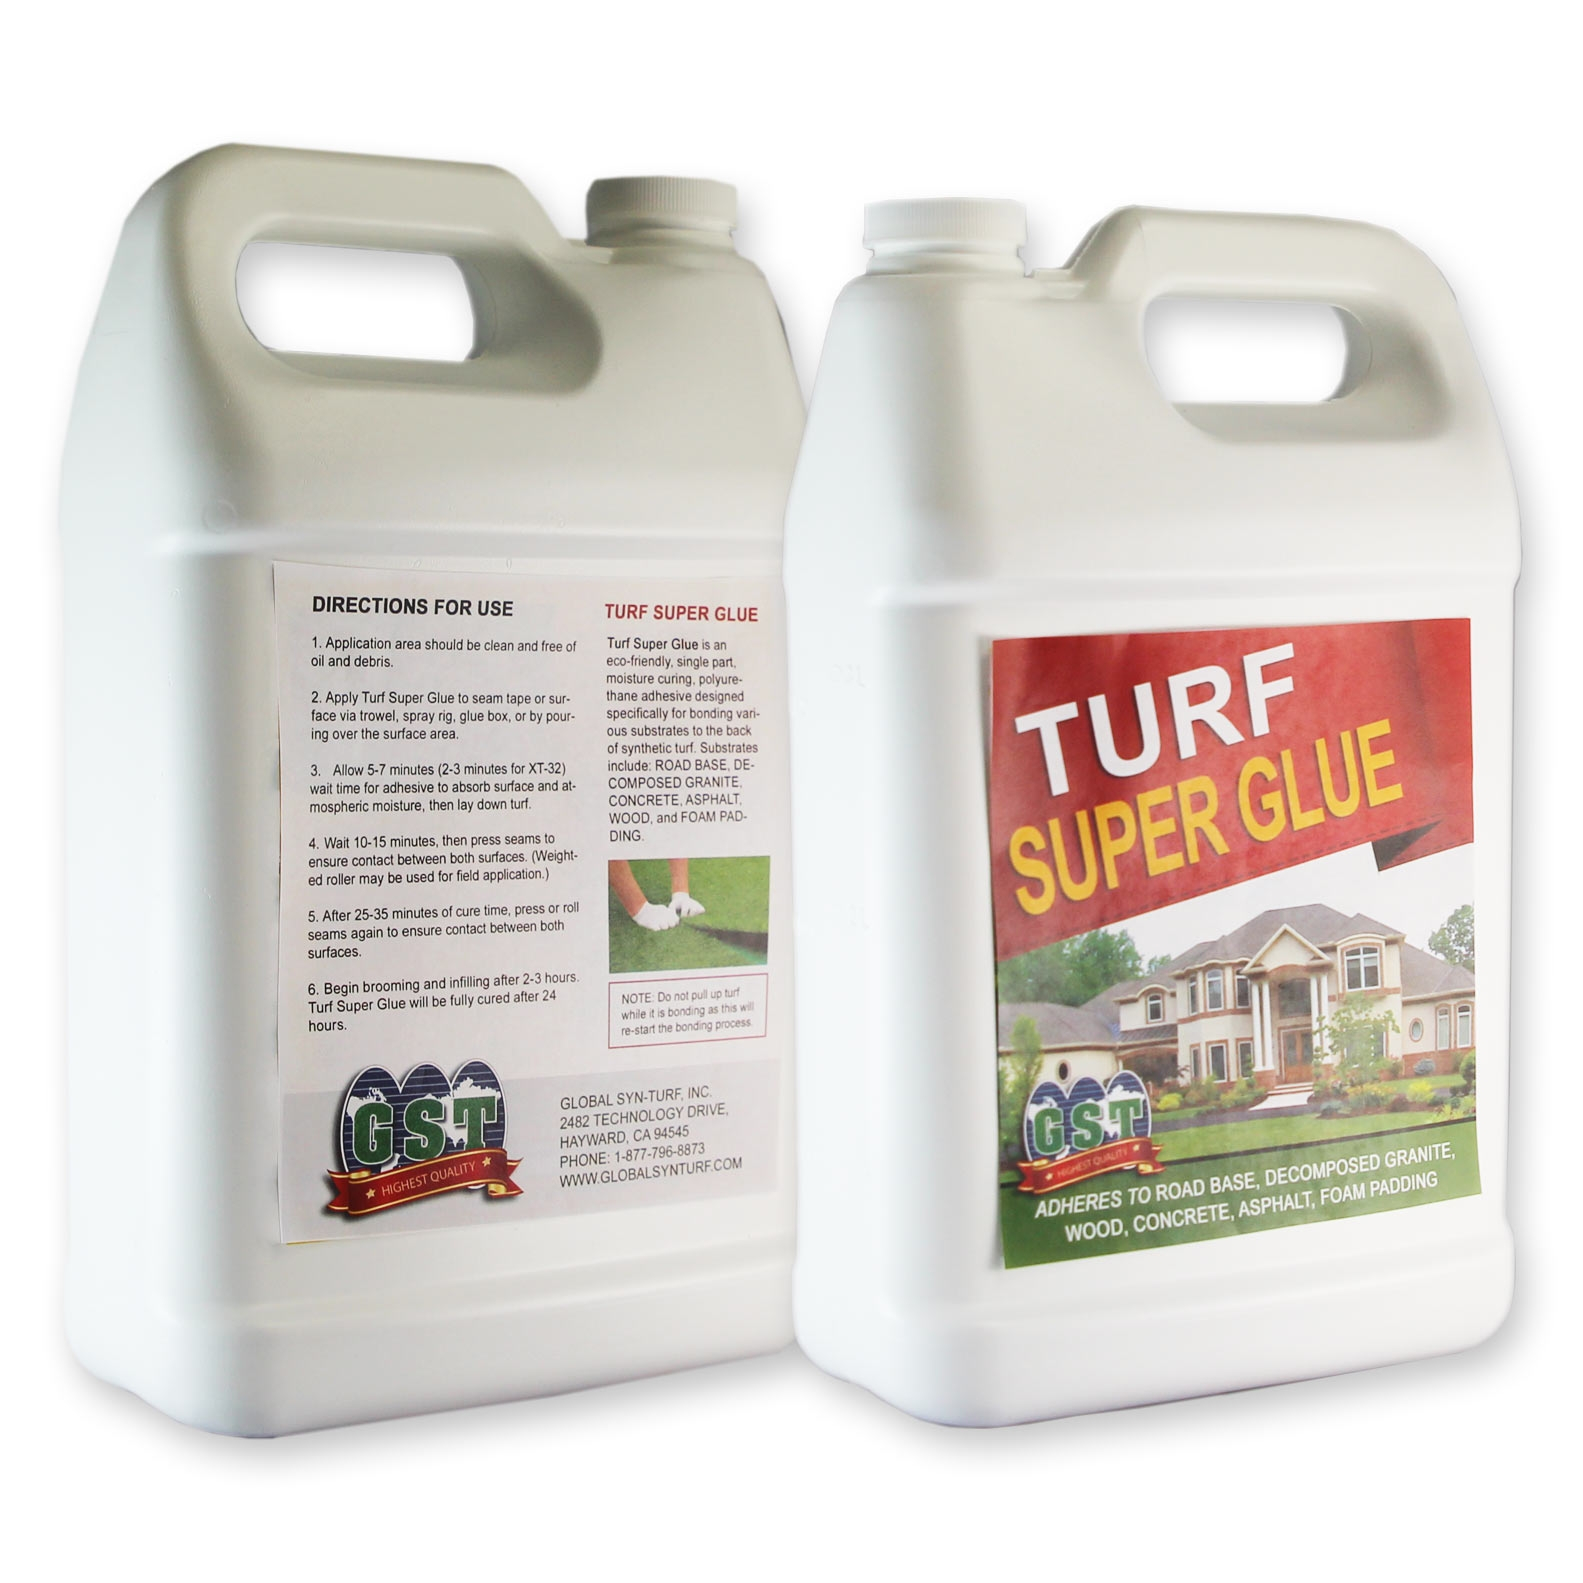 Turf Super Glue